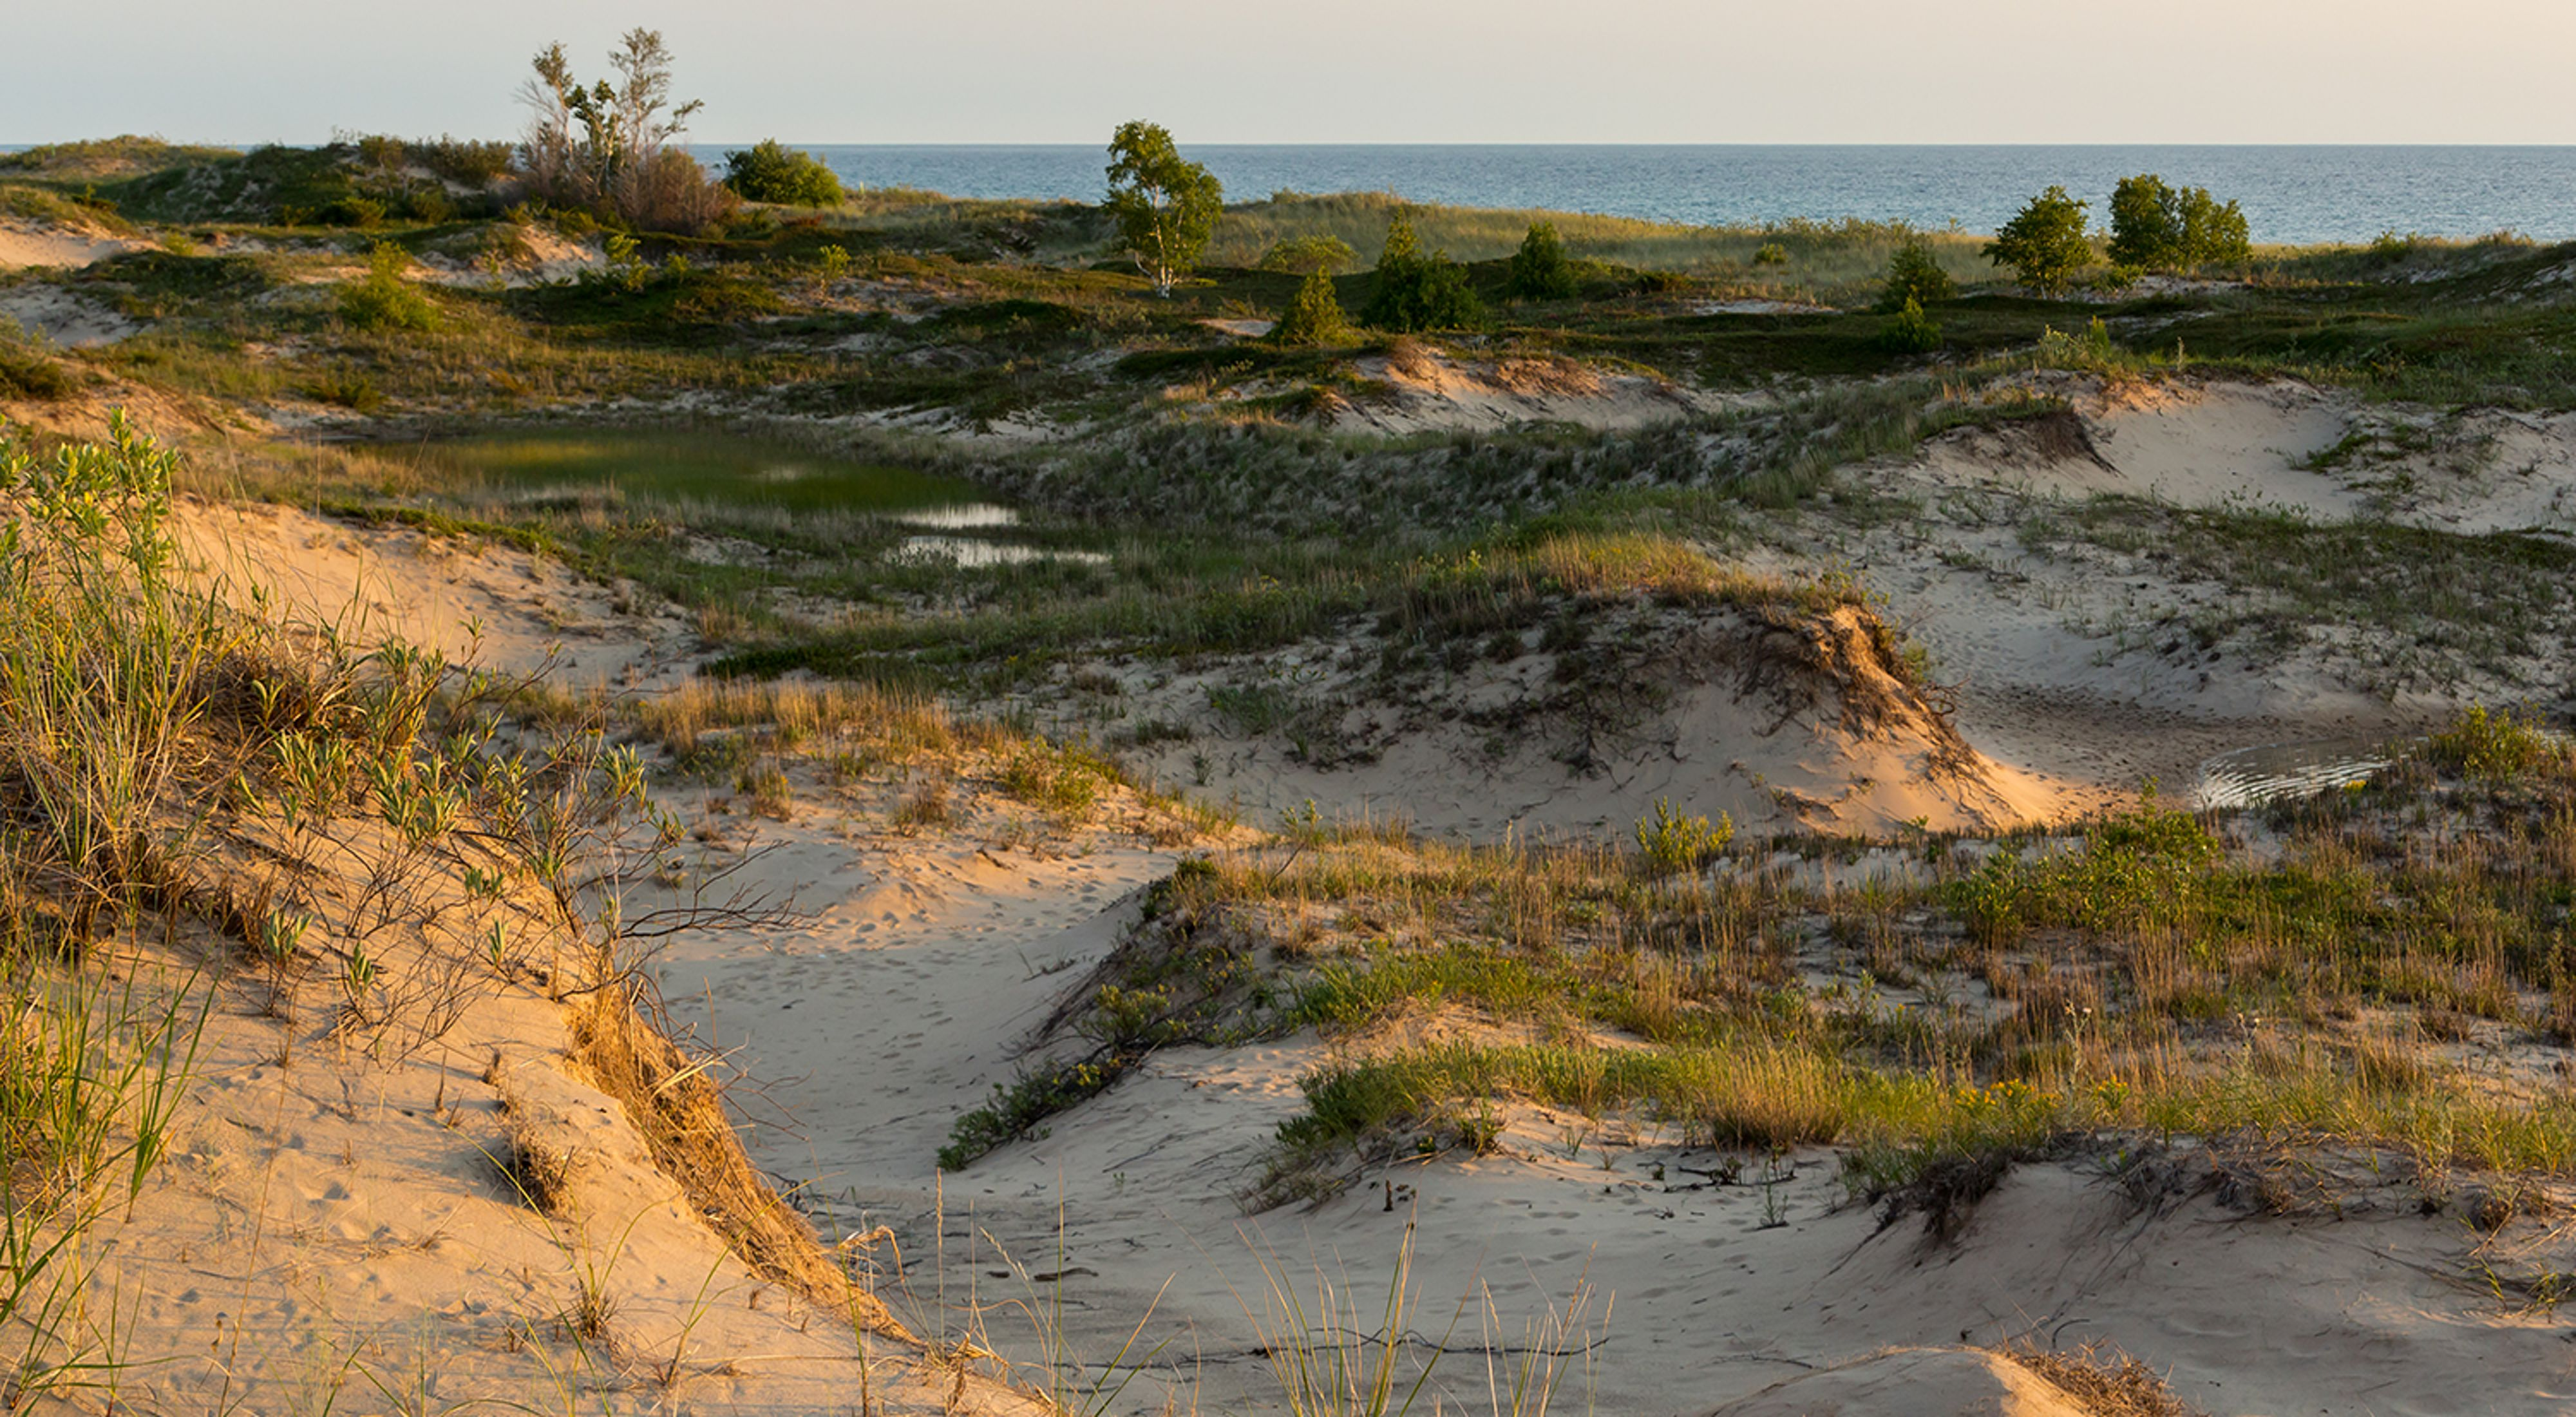 Rolling sand dunes with green grass along a lake shore.